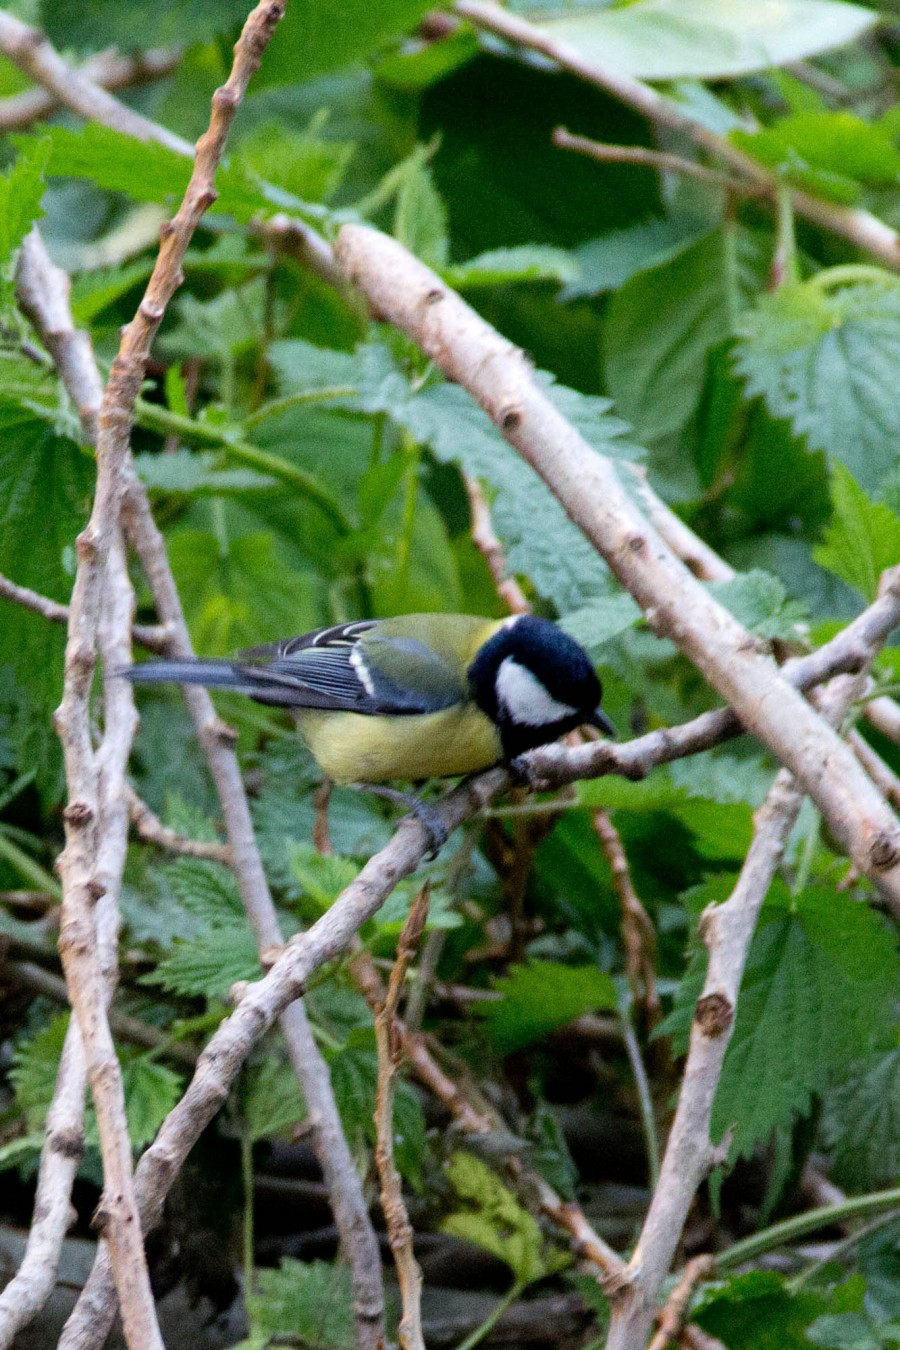 A Great Tit (Parus major) foraging following the dawn chorus.